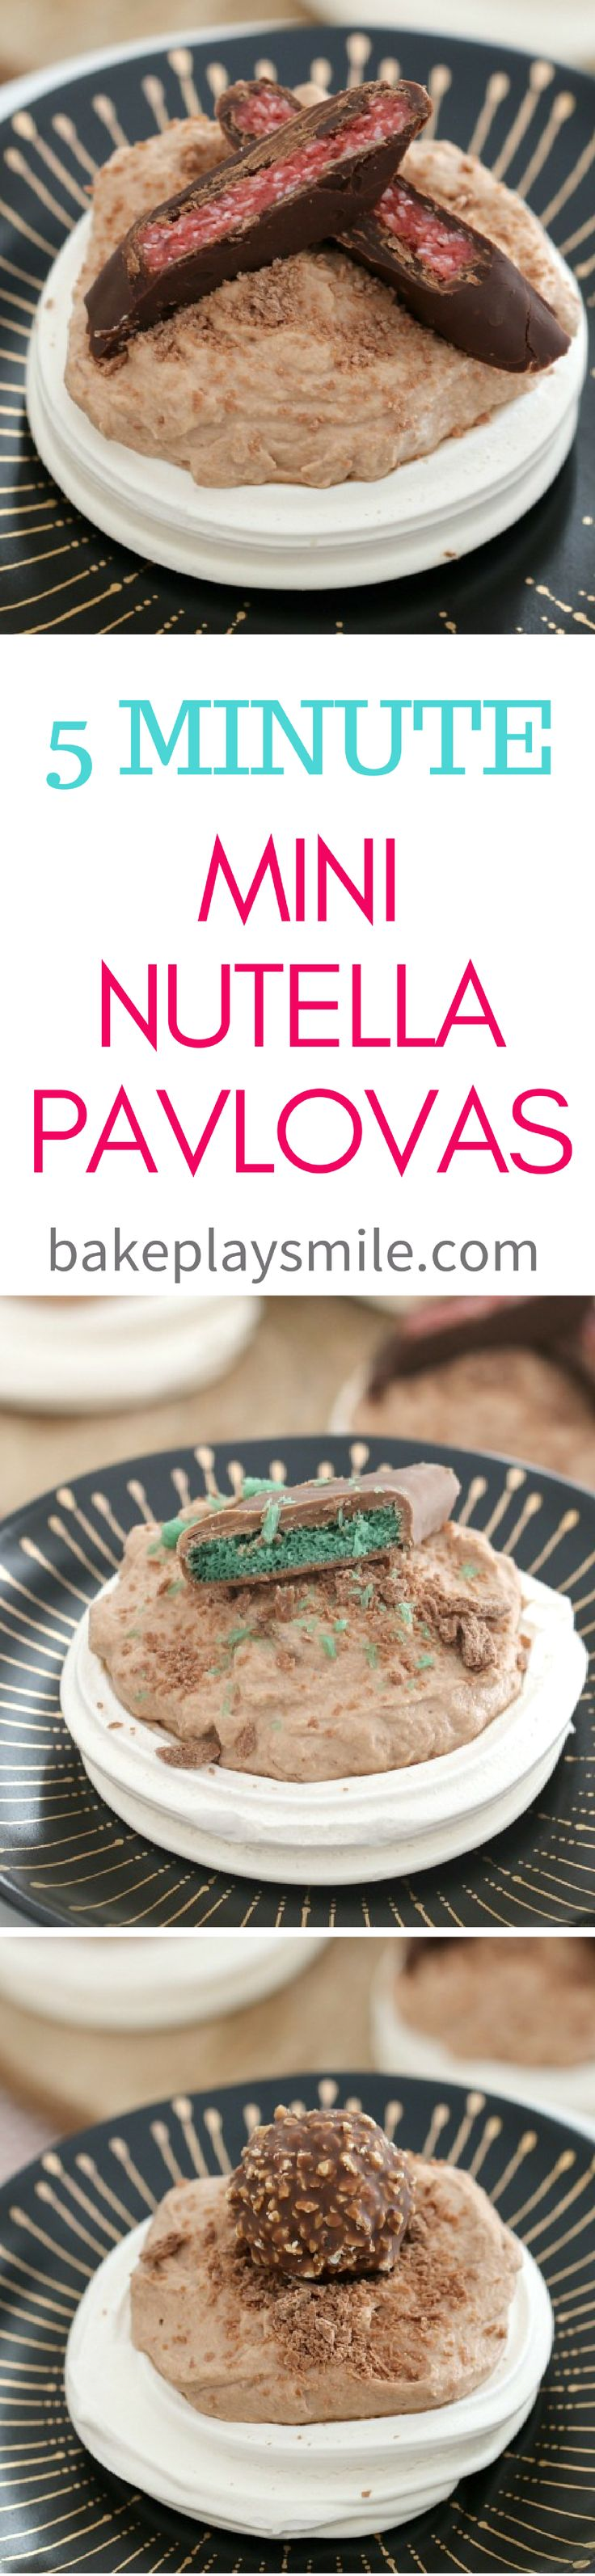 Take the stress out of tonights dessert with the easiest 5 Minute Mini Thermomix Nutella Pavlovas! They look so cute… and they taste even better! Mix and match with your favourite chocolate toppings for the ultimate treat.   #nutella #pavlovas #mini #quick #Christmas #5minute #dessert #conventional #thermomix